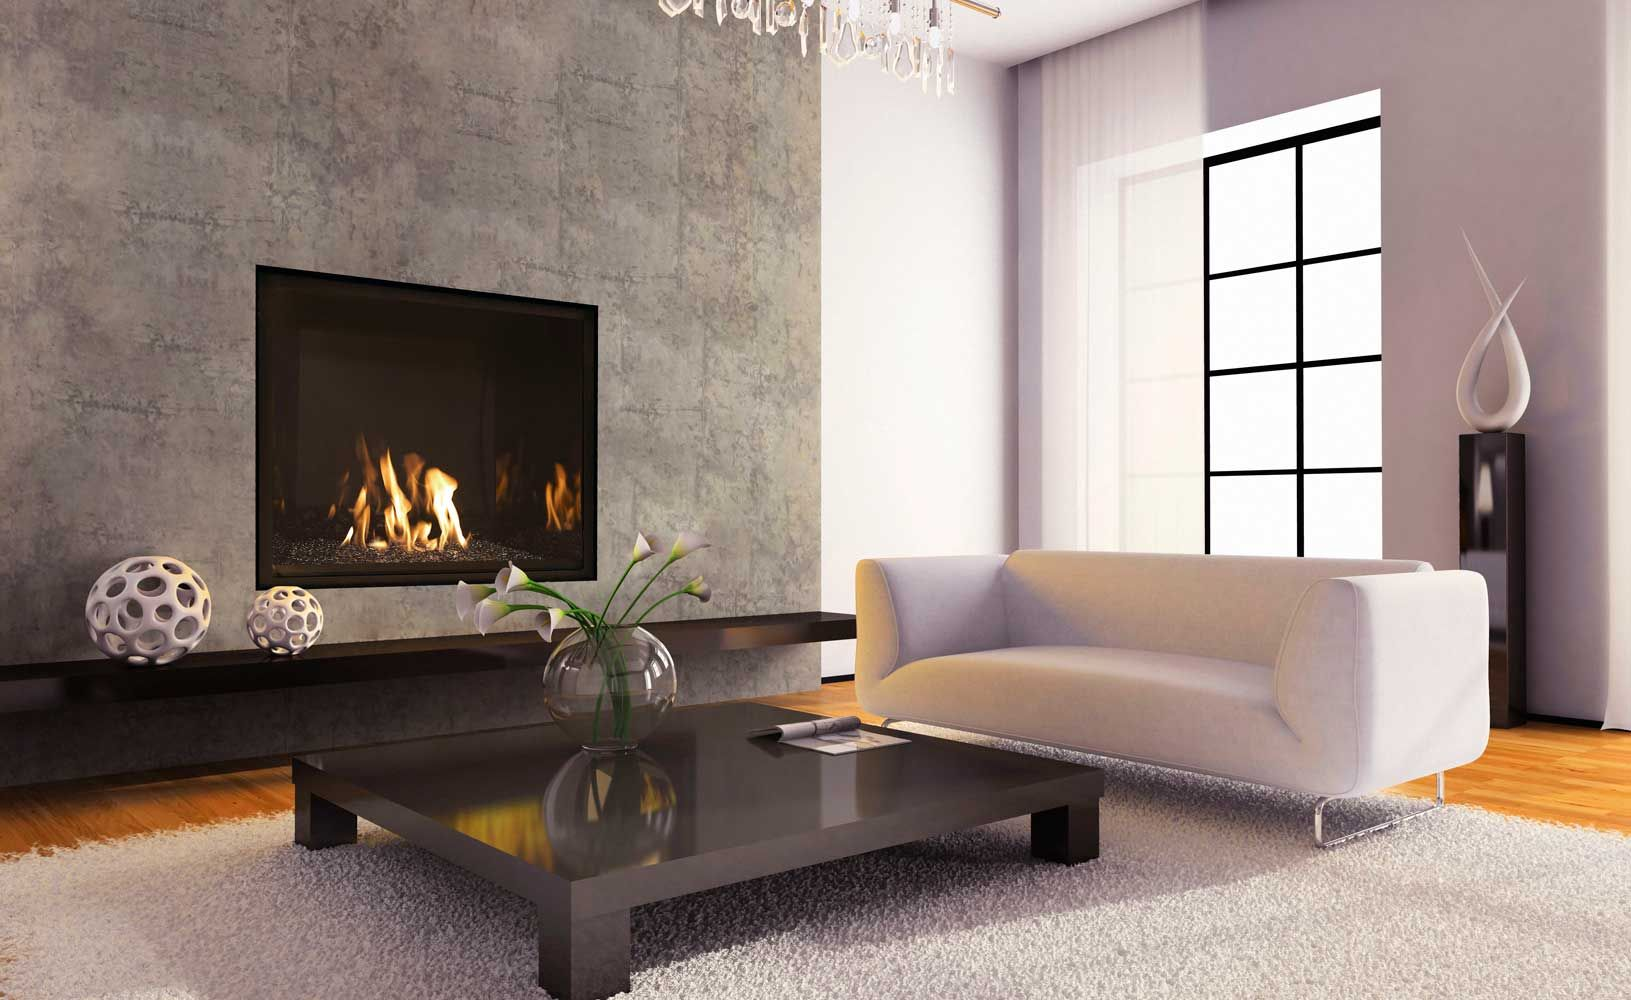 Interior ideas mendota fullview modern fireplace scene contemporary fireplace mantel design ideas appealing family